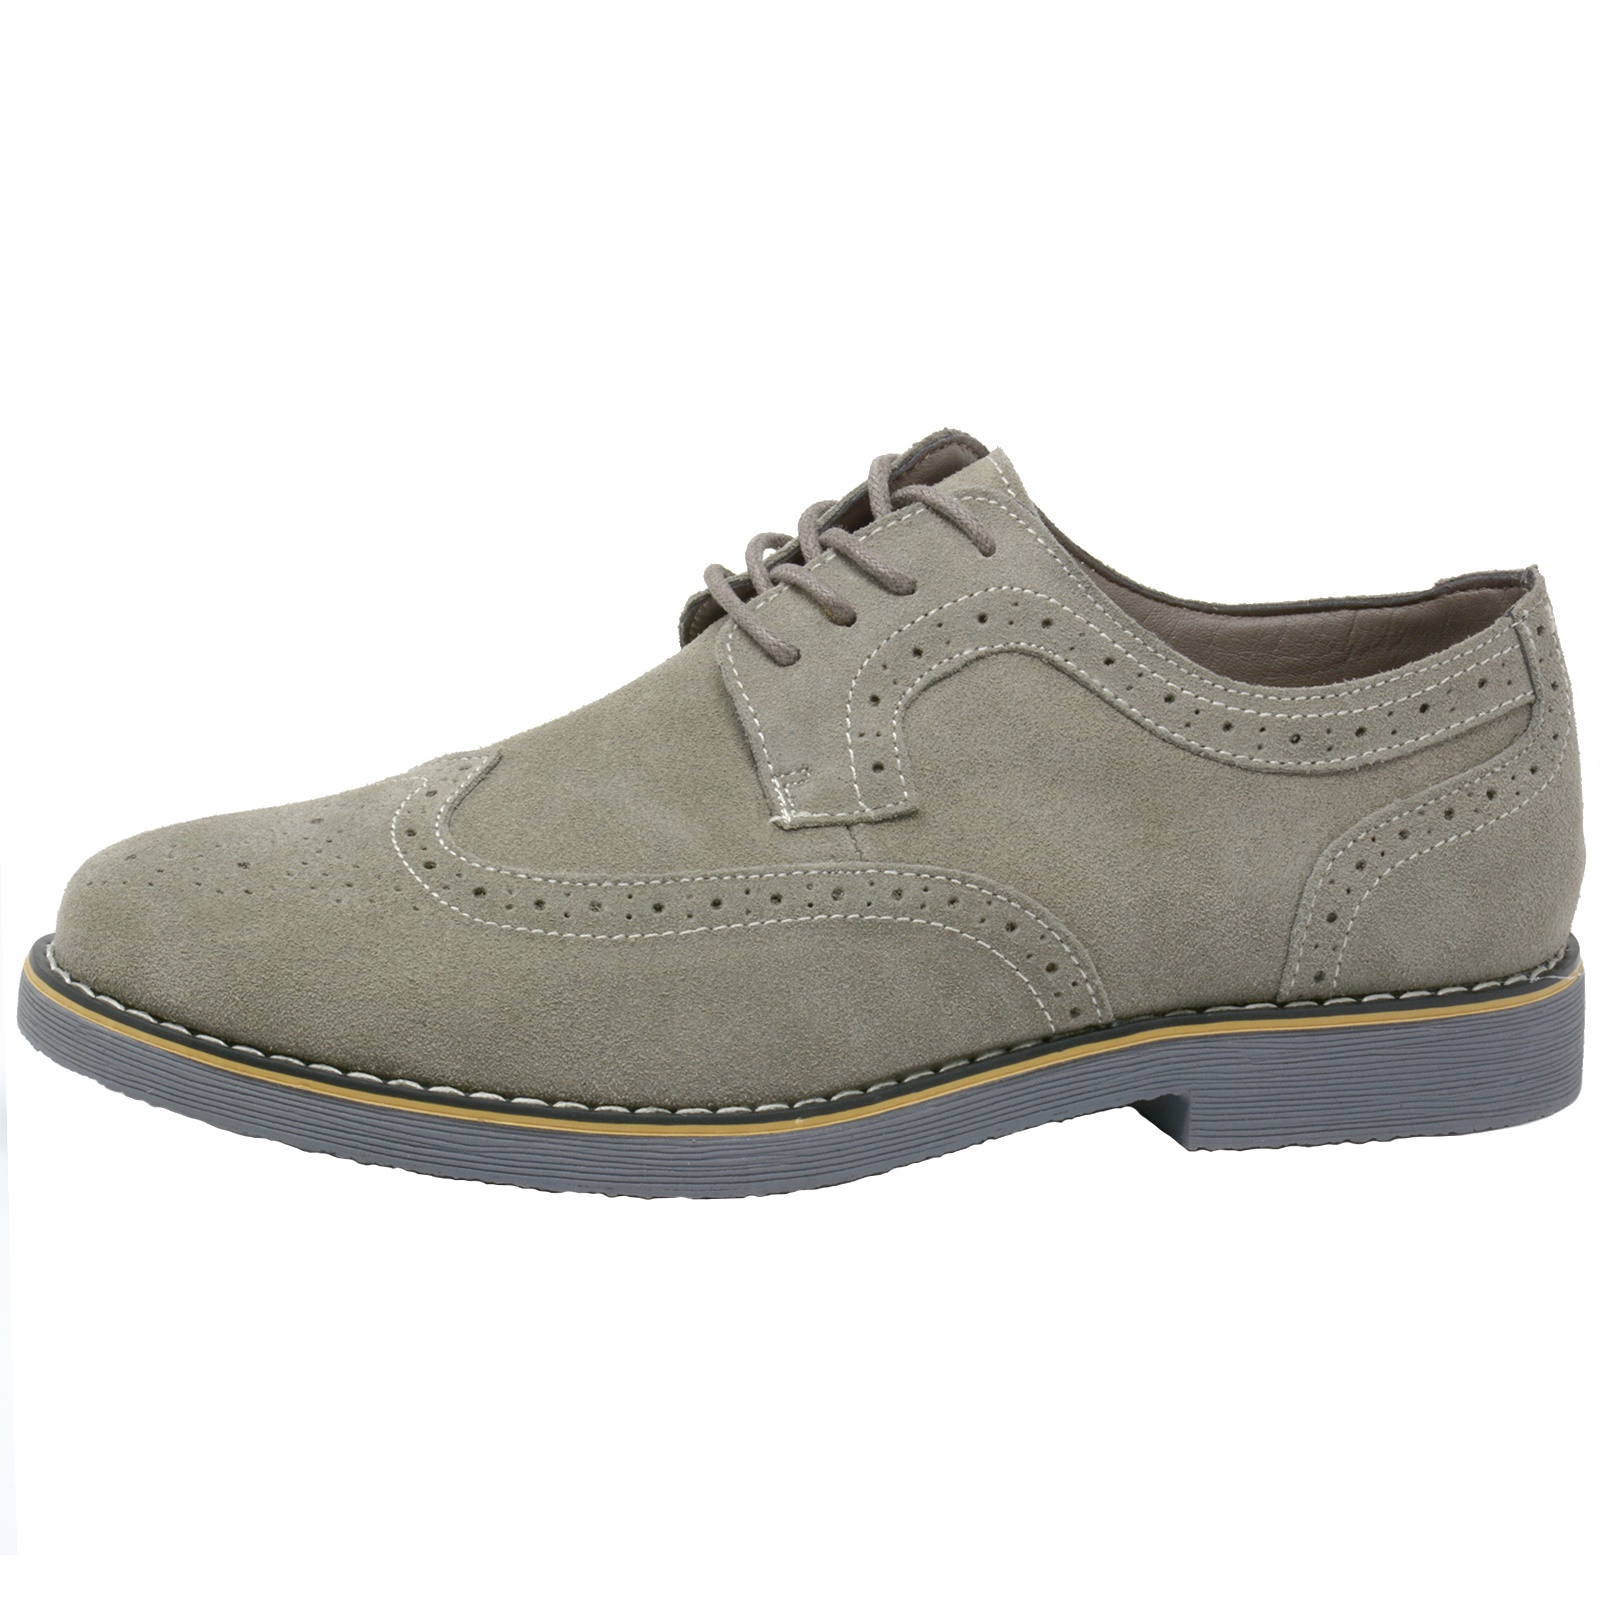 Alpine-Swiss-Beau-Mens-Dress-Shoes-Genuine-Suede-Wing-Tip-Brogue-Lace-Up-Oxfords thumbnail 14